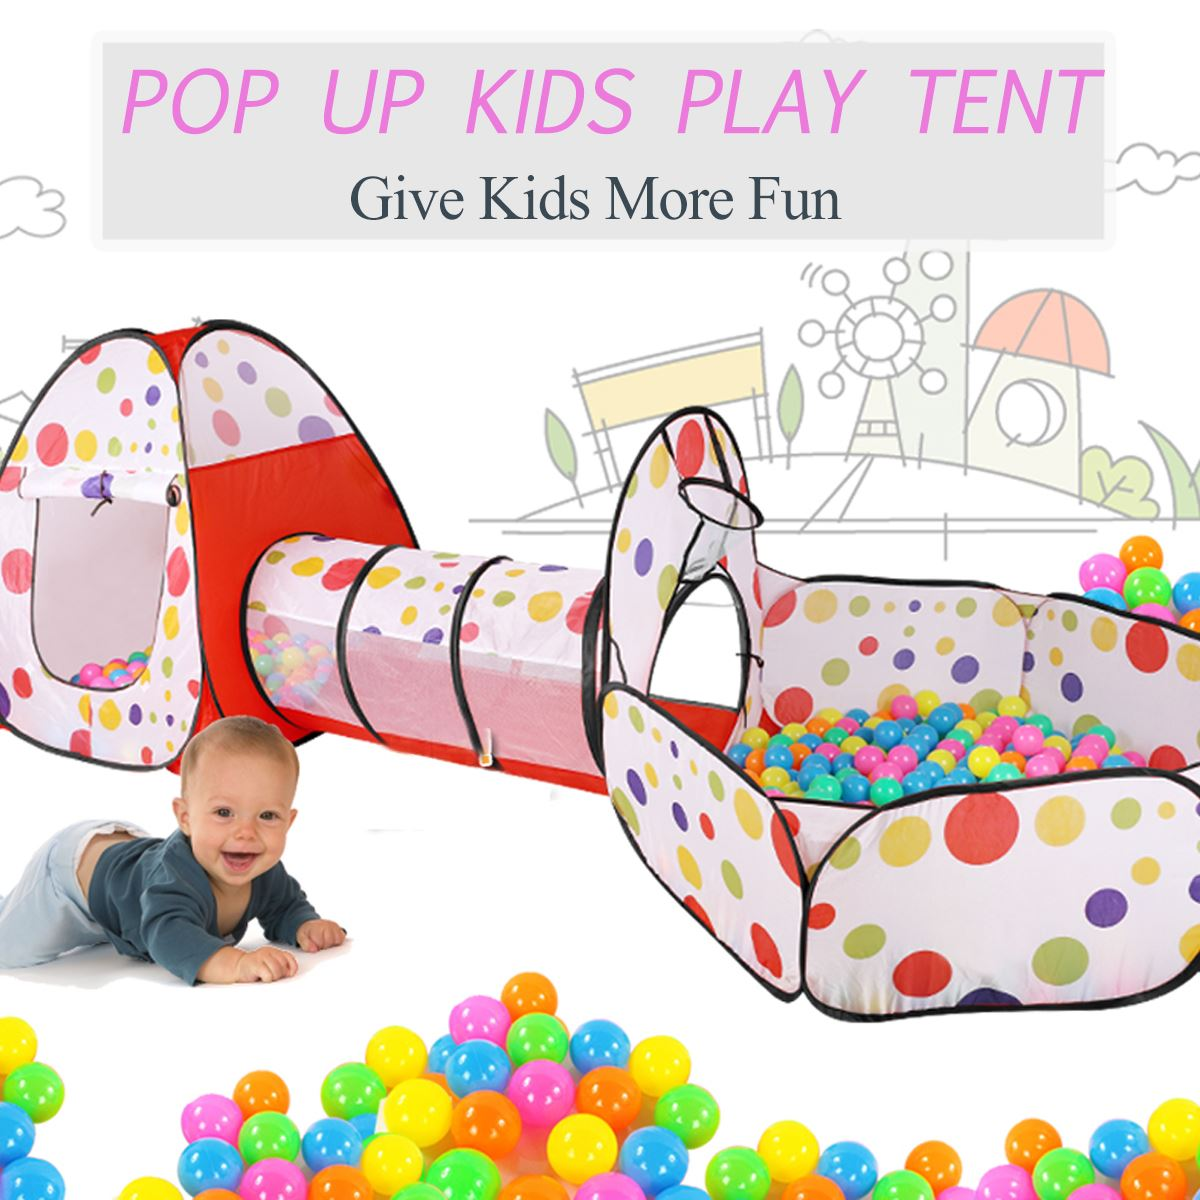 super popular ceb42 aac58 US $31.99 |3 in 1 Up Play Tent Playhouse Tunnel Ball Pit Baby Kids Play  Folding Toy Indoor Outdoor Toys-in Toy Tents from Toys & Hobbies on ...